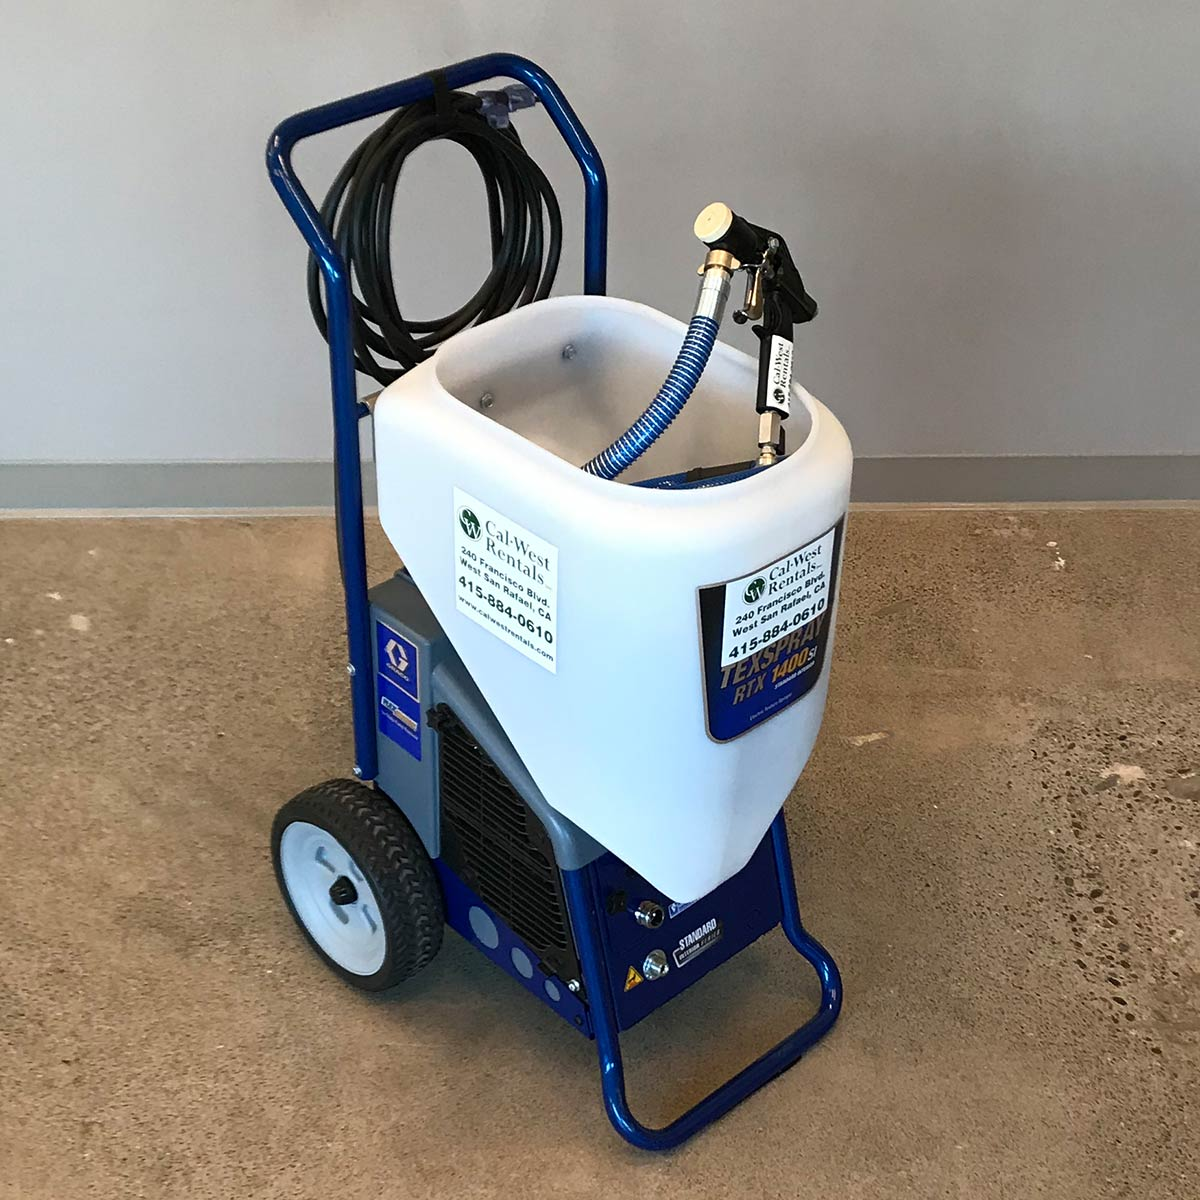 Graco Texture Sprayer Large RTX1400 (7)